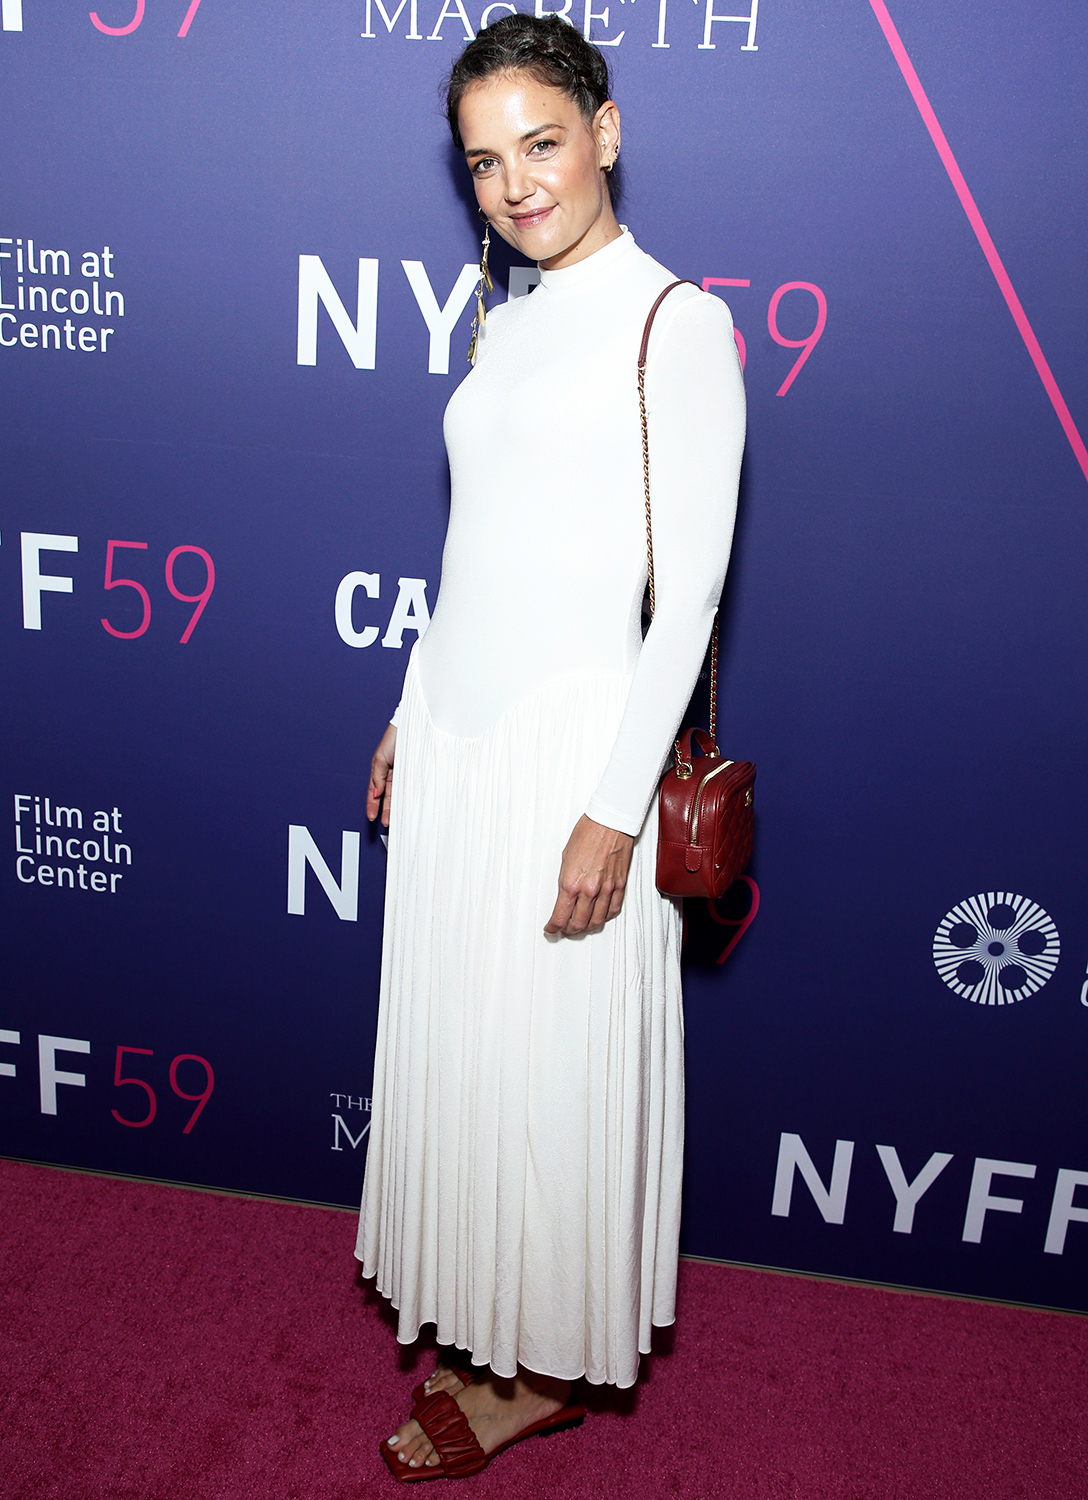 Katie Holmes attends the opening night screening of The Tragedy Of Macbeth during the 59th New York Film Festival on September 24, 2021 in New York City.